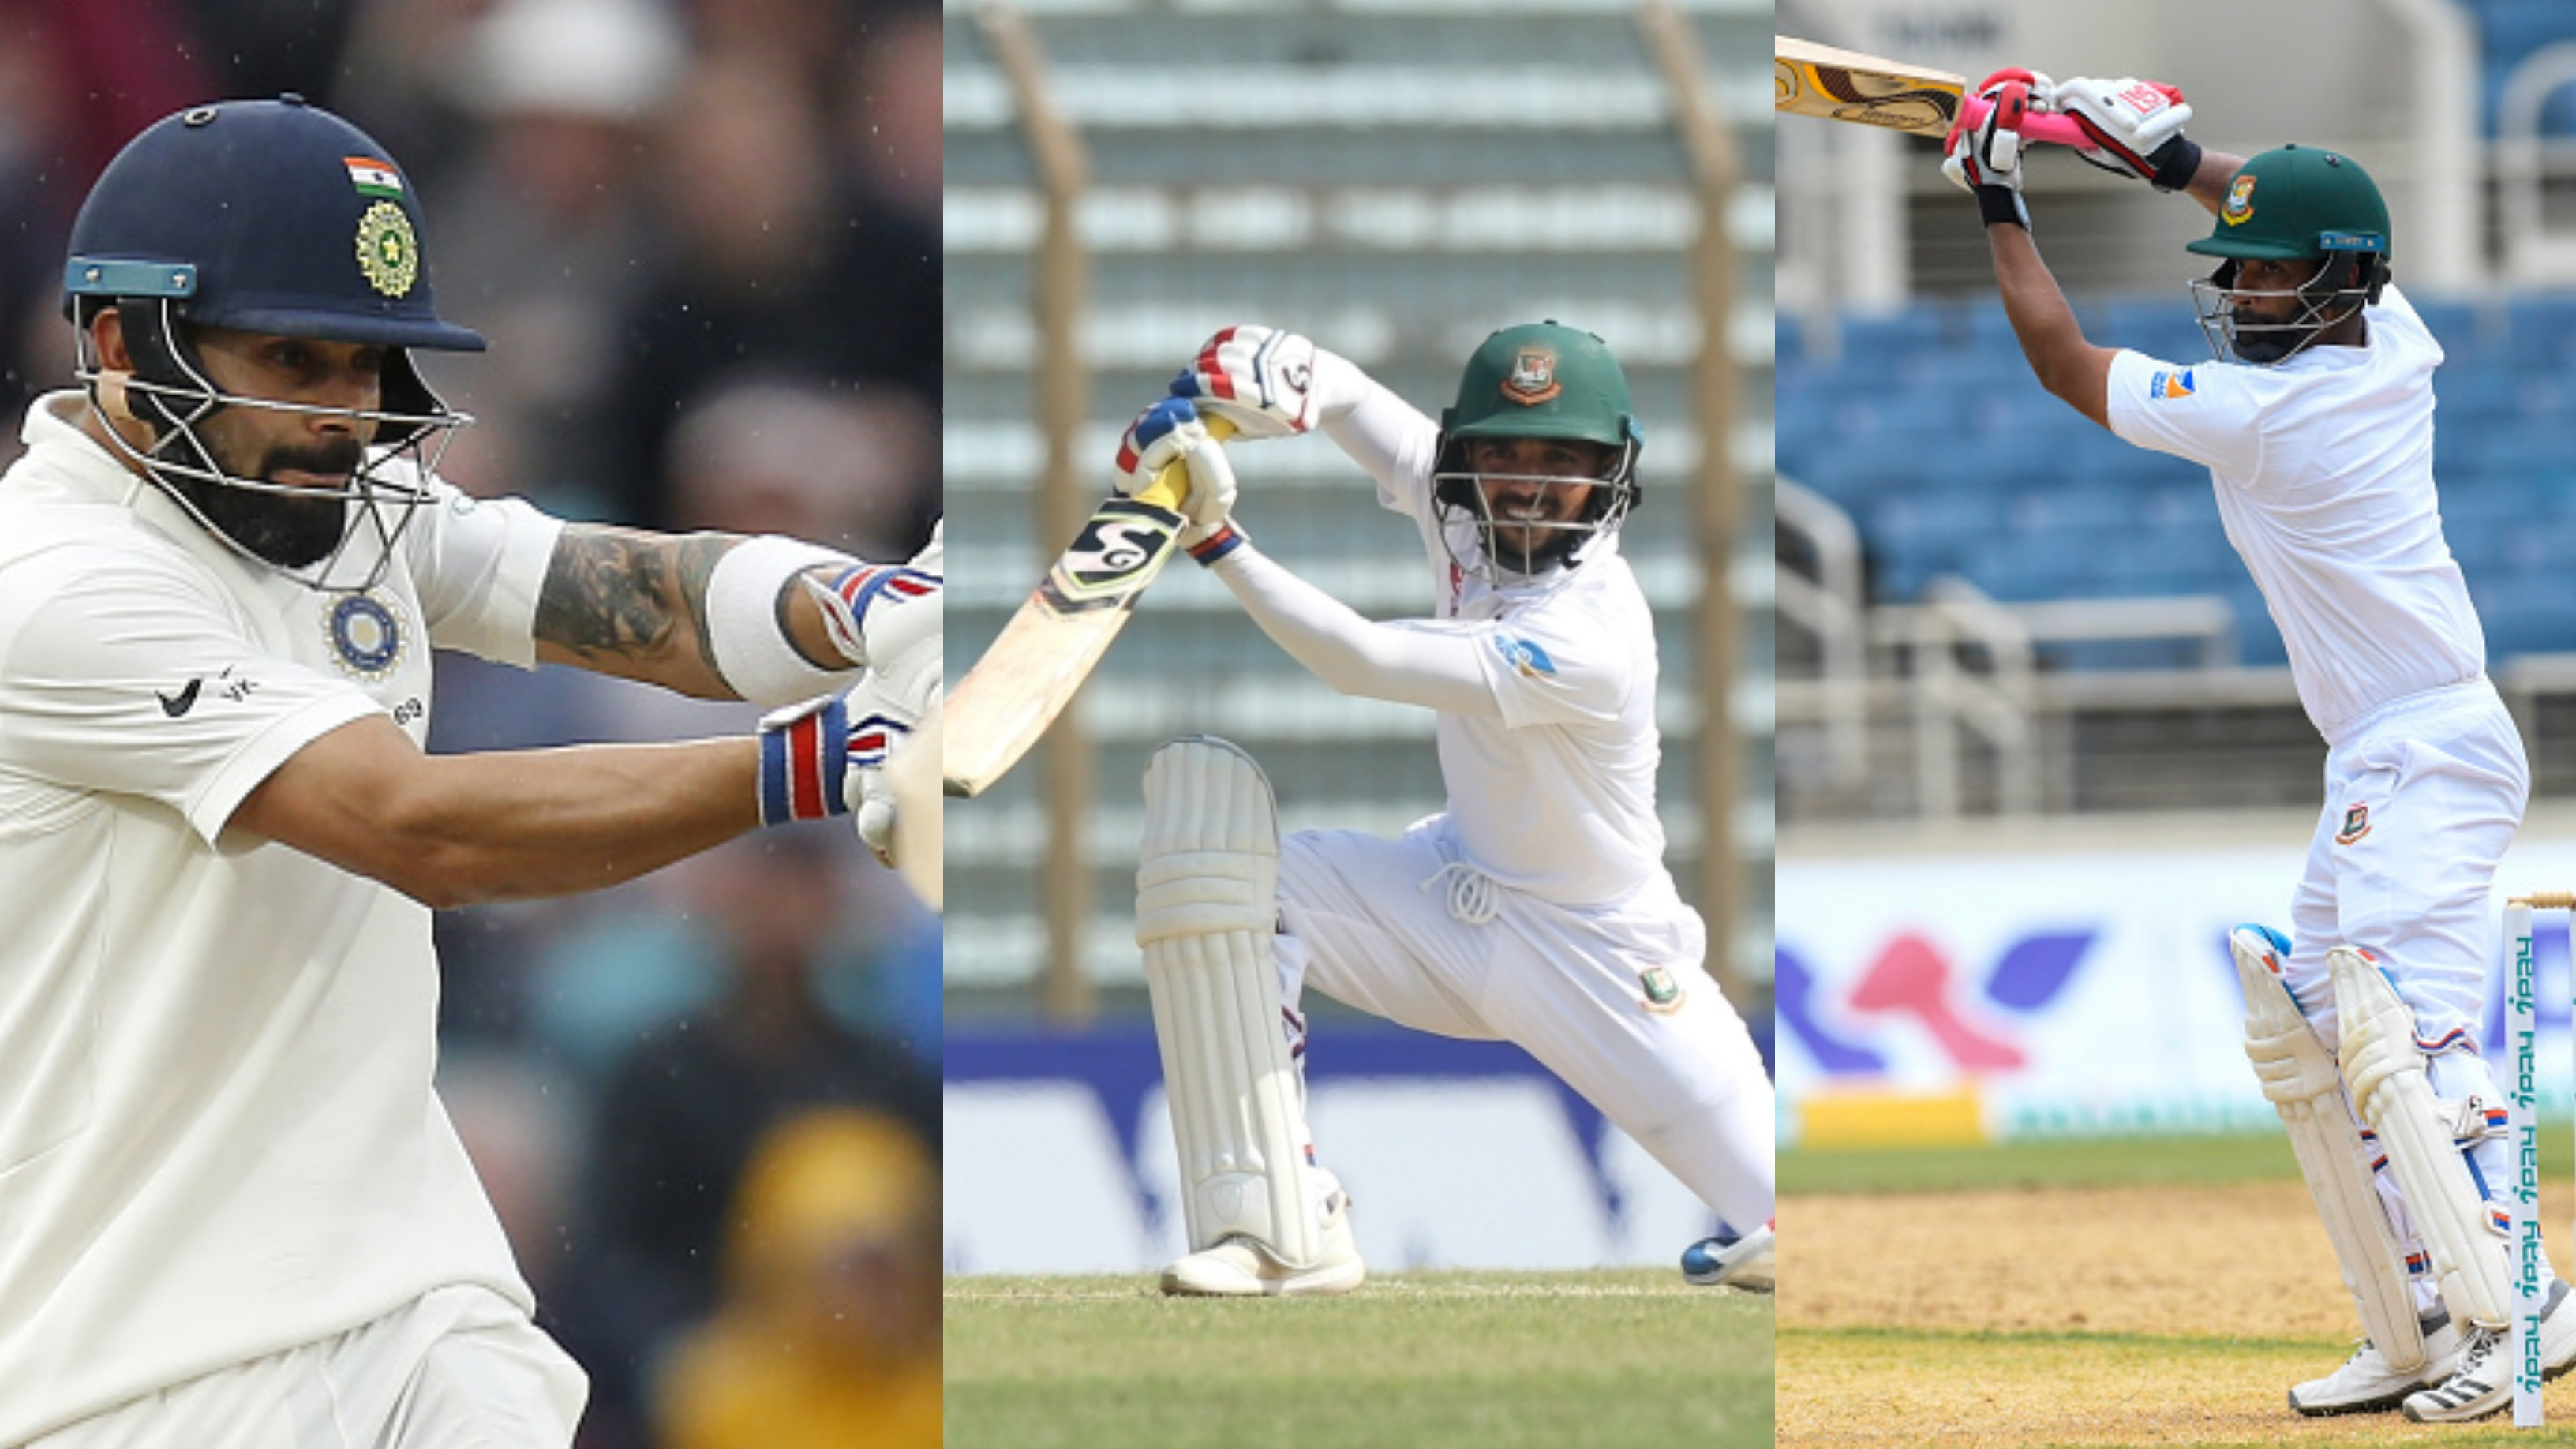 BAN v WI 2018: Unfair to compare me with Tamim Iqbal and Virat Kohli, says Mominul Haque